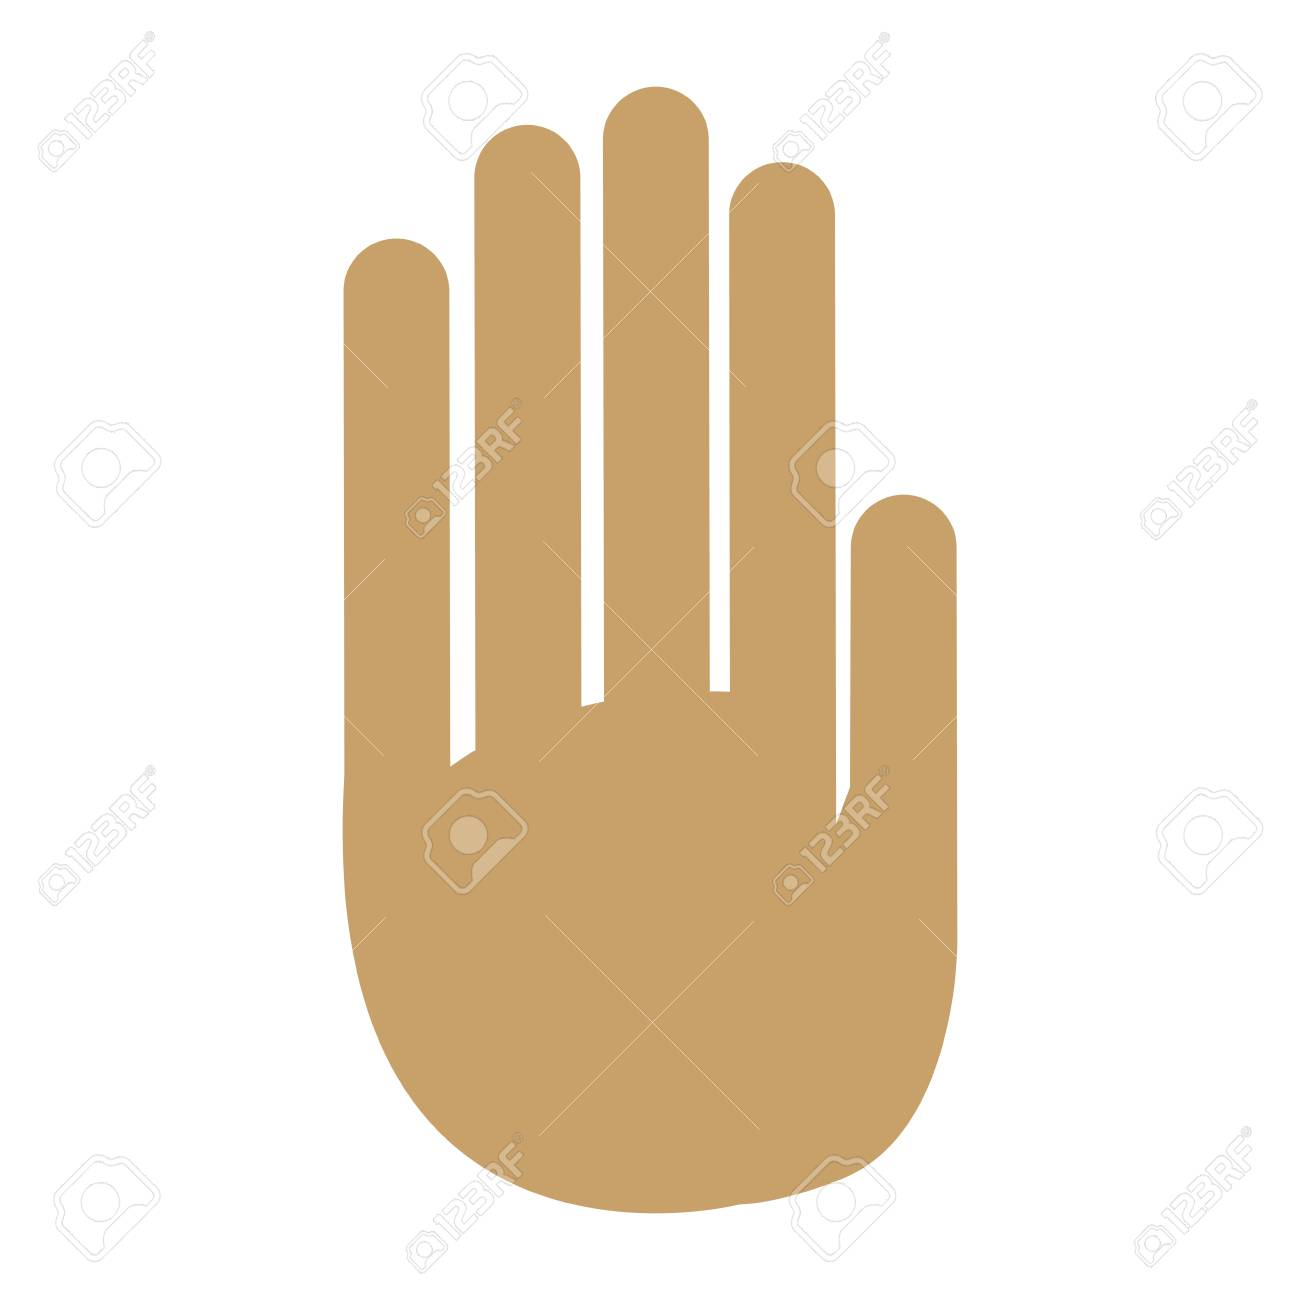 Hand Palm Human Symbol Design Vector Illustration Royalty Free